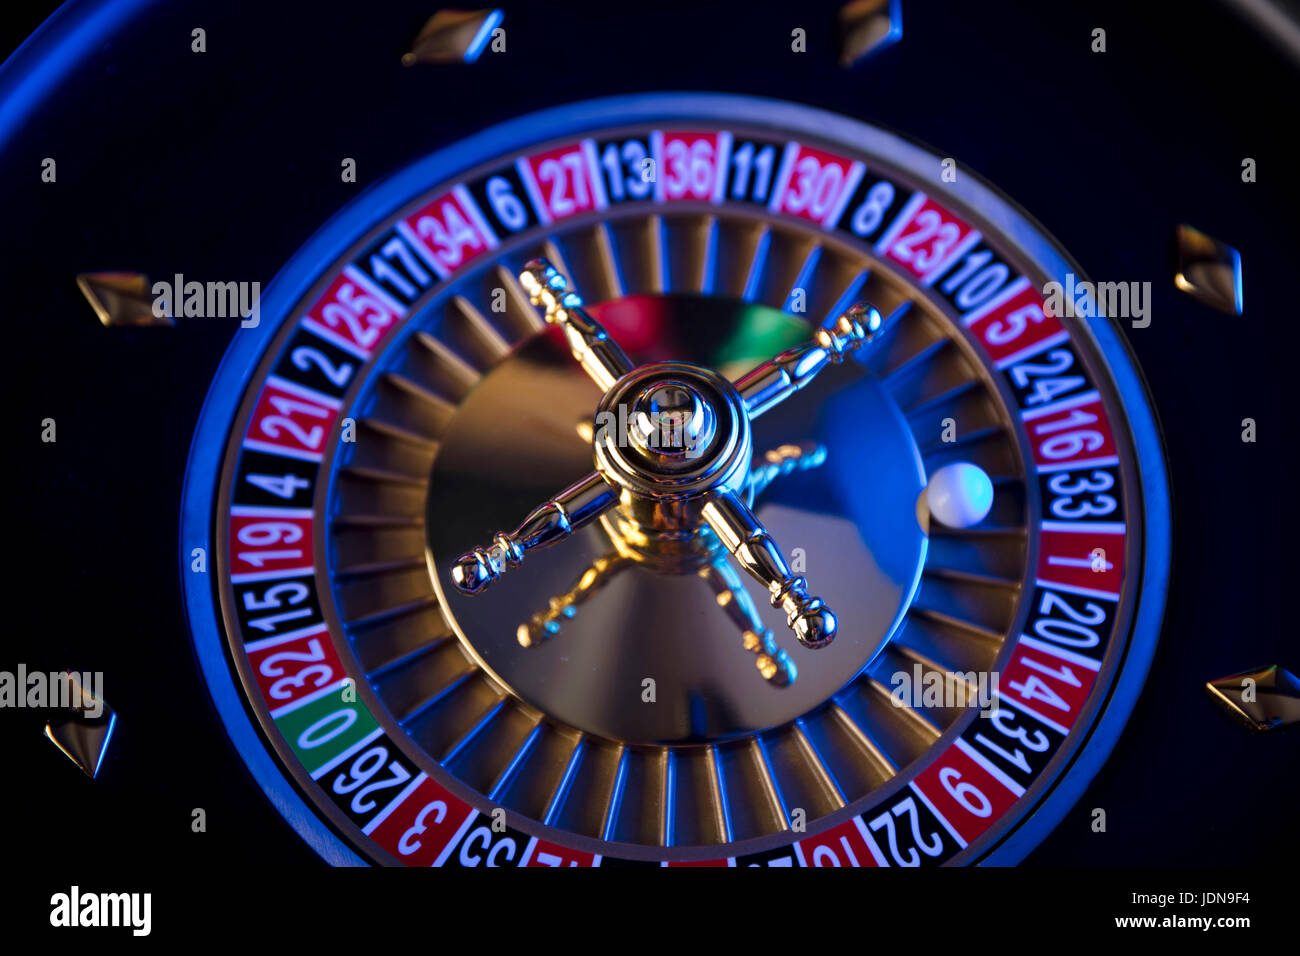 Casino blurred background. Roulette and stacks of chips. - Stock Image